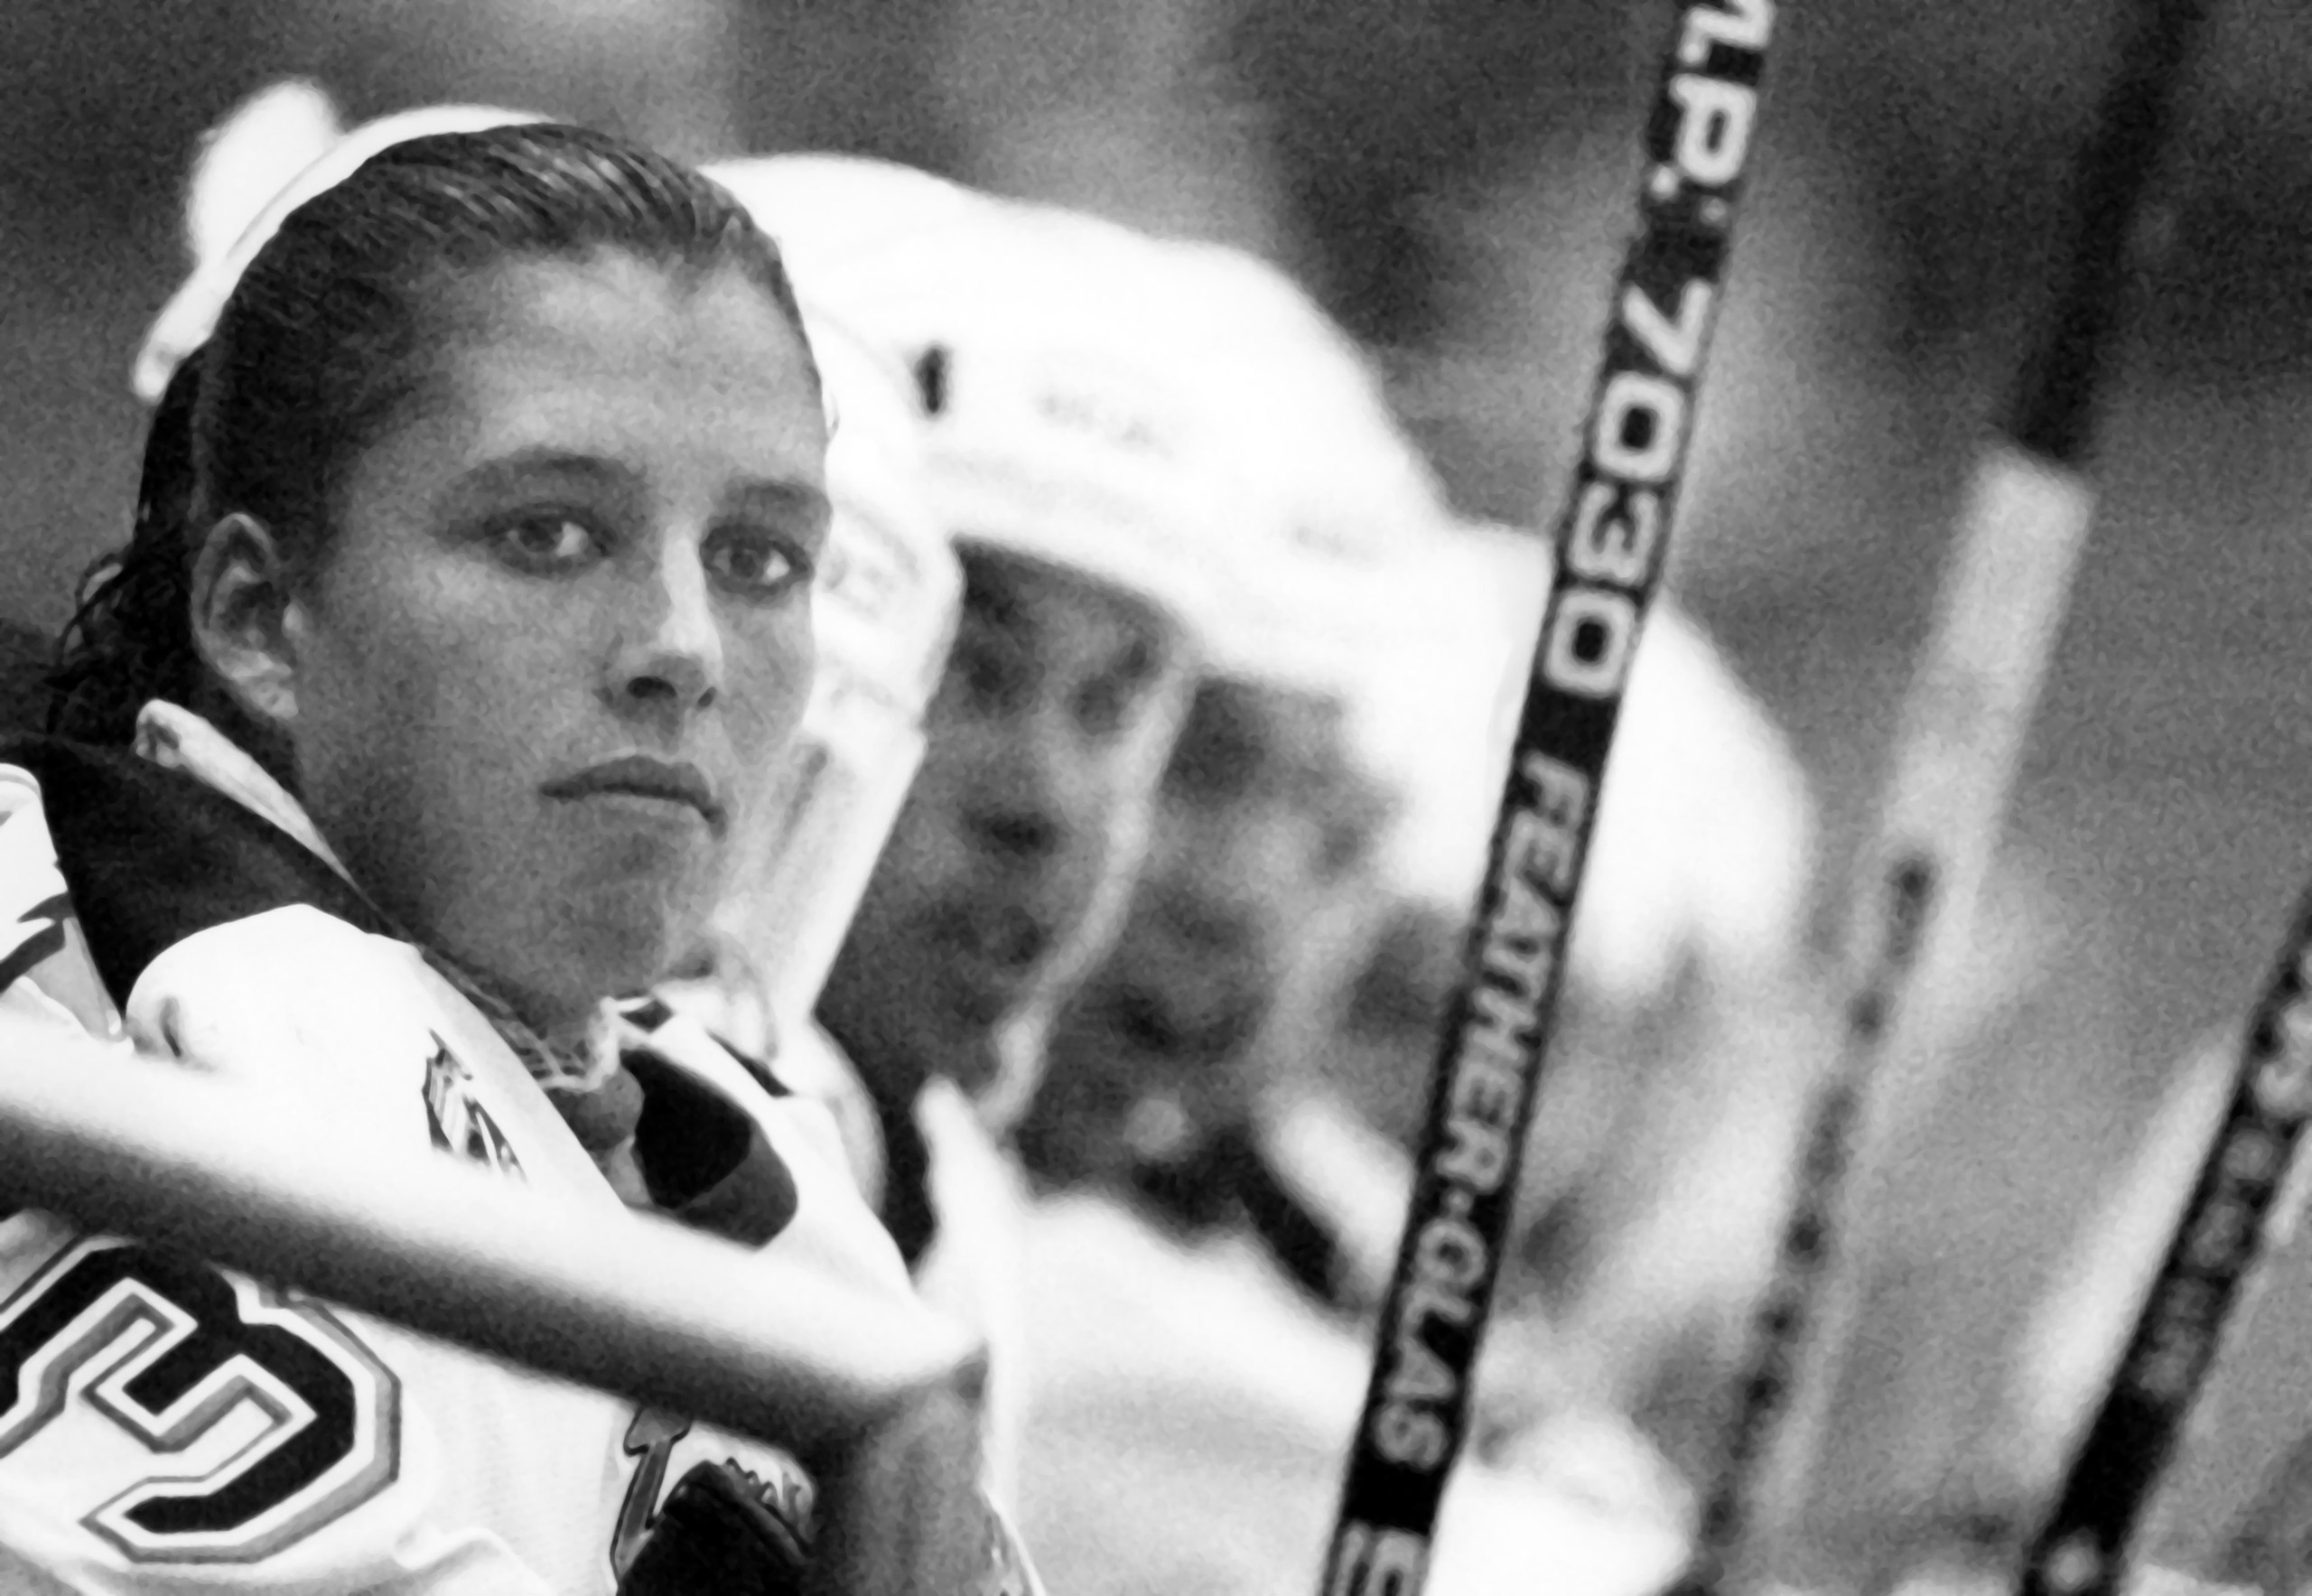 Goalie Manon Rheaume of the Tampa Bay Lightning sits on the bench during an NHL preseason game against the St. Louis Blues on Sept. 23, 1992, at the Expo Hall in Tampa, Fla. Rheaume was the first woman to play in the NHL, though she didn't appear in the regular season. After a 1992 game, TIME noted that a sportswriter had just one question for her:  'Did you break a nail?''